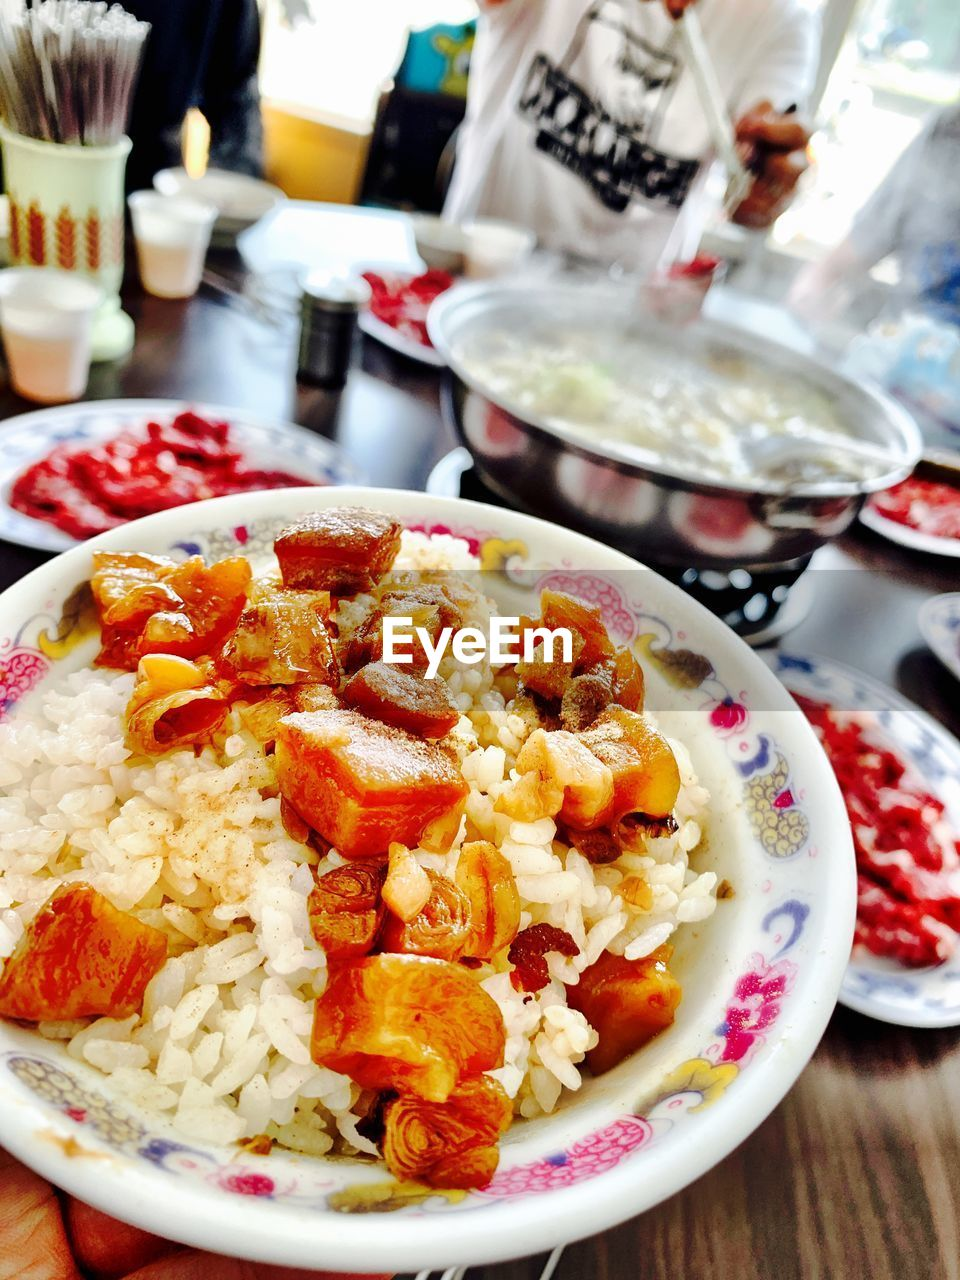 food and drink, food, ready-to-eat, freshness, healthy eating, wellbeing, table, indoors, meal, plate, bowl, focus on foreground, serving size, close-up, no people, rice - food staple, still life, rice, vegetable, kitchen utensil, crockery, garnish, dinner, breakfast